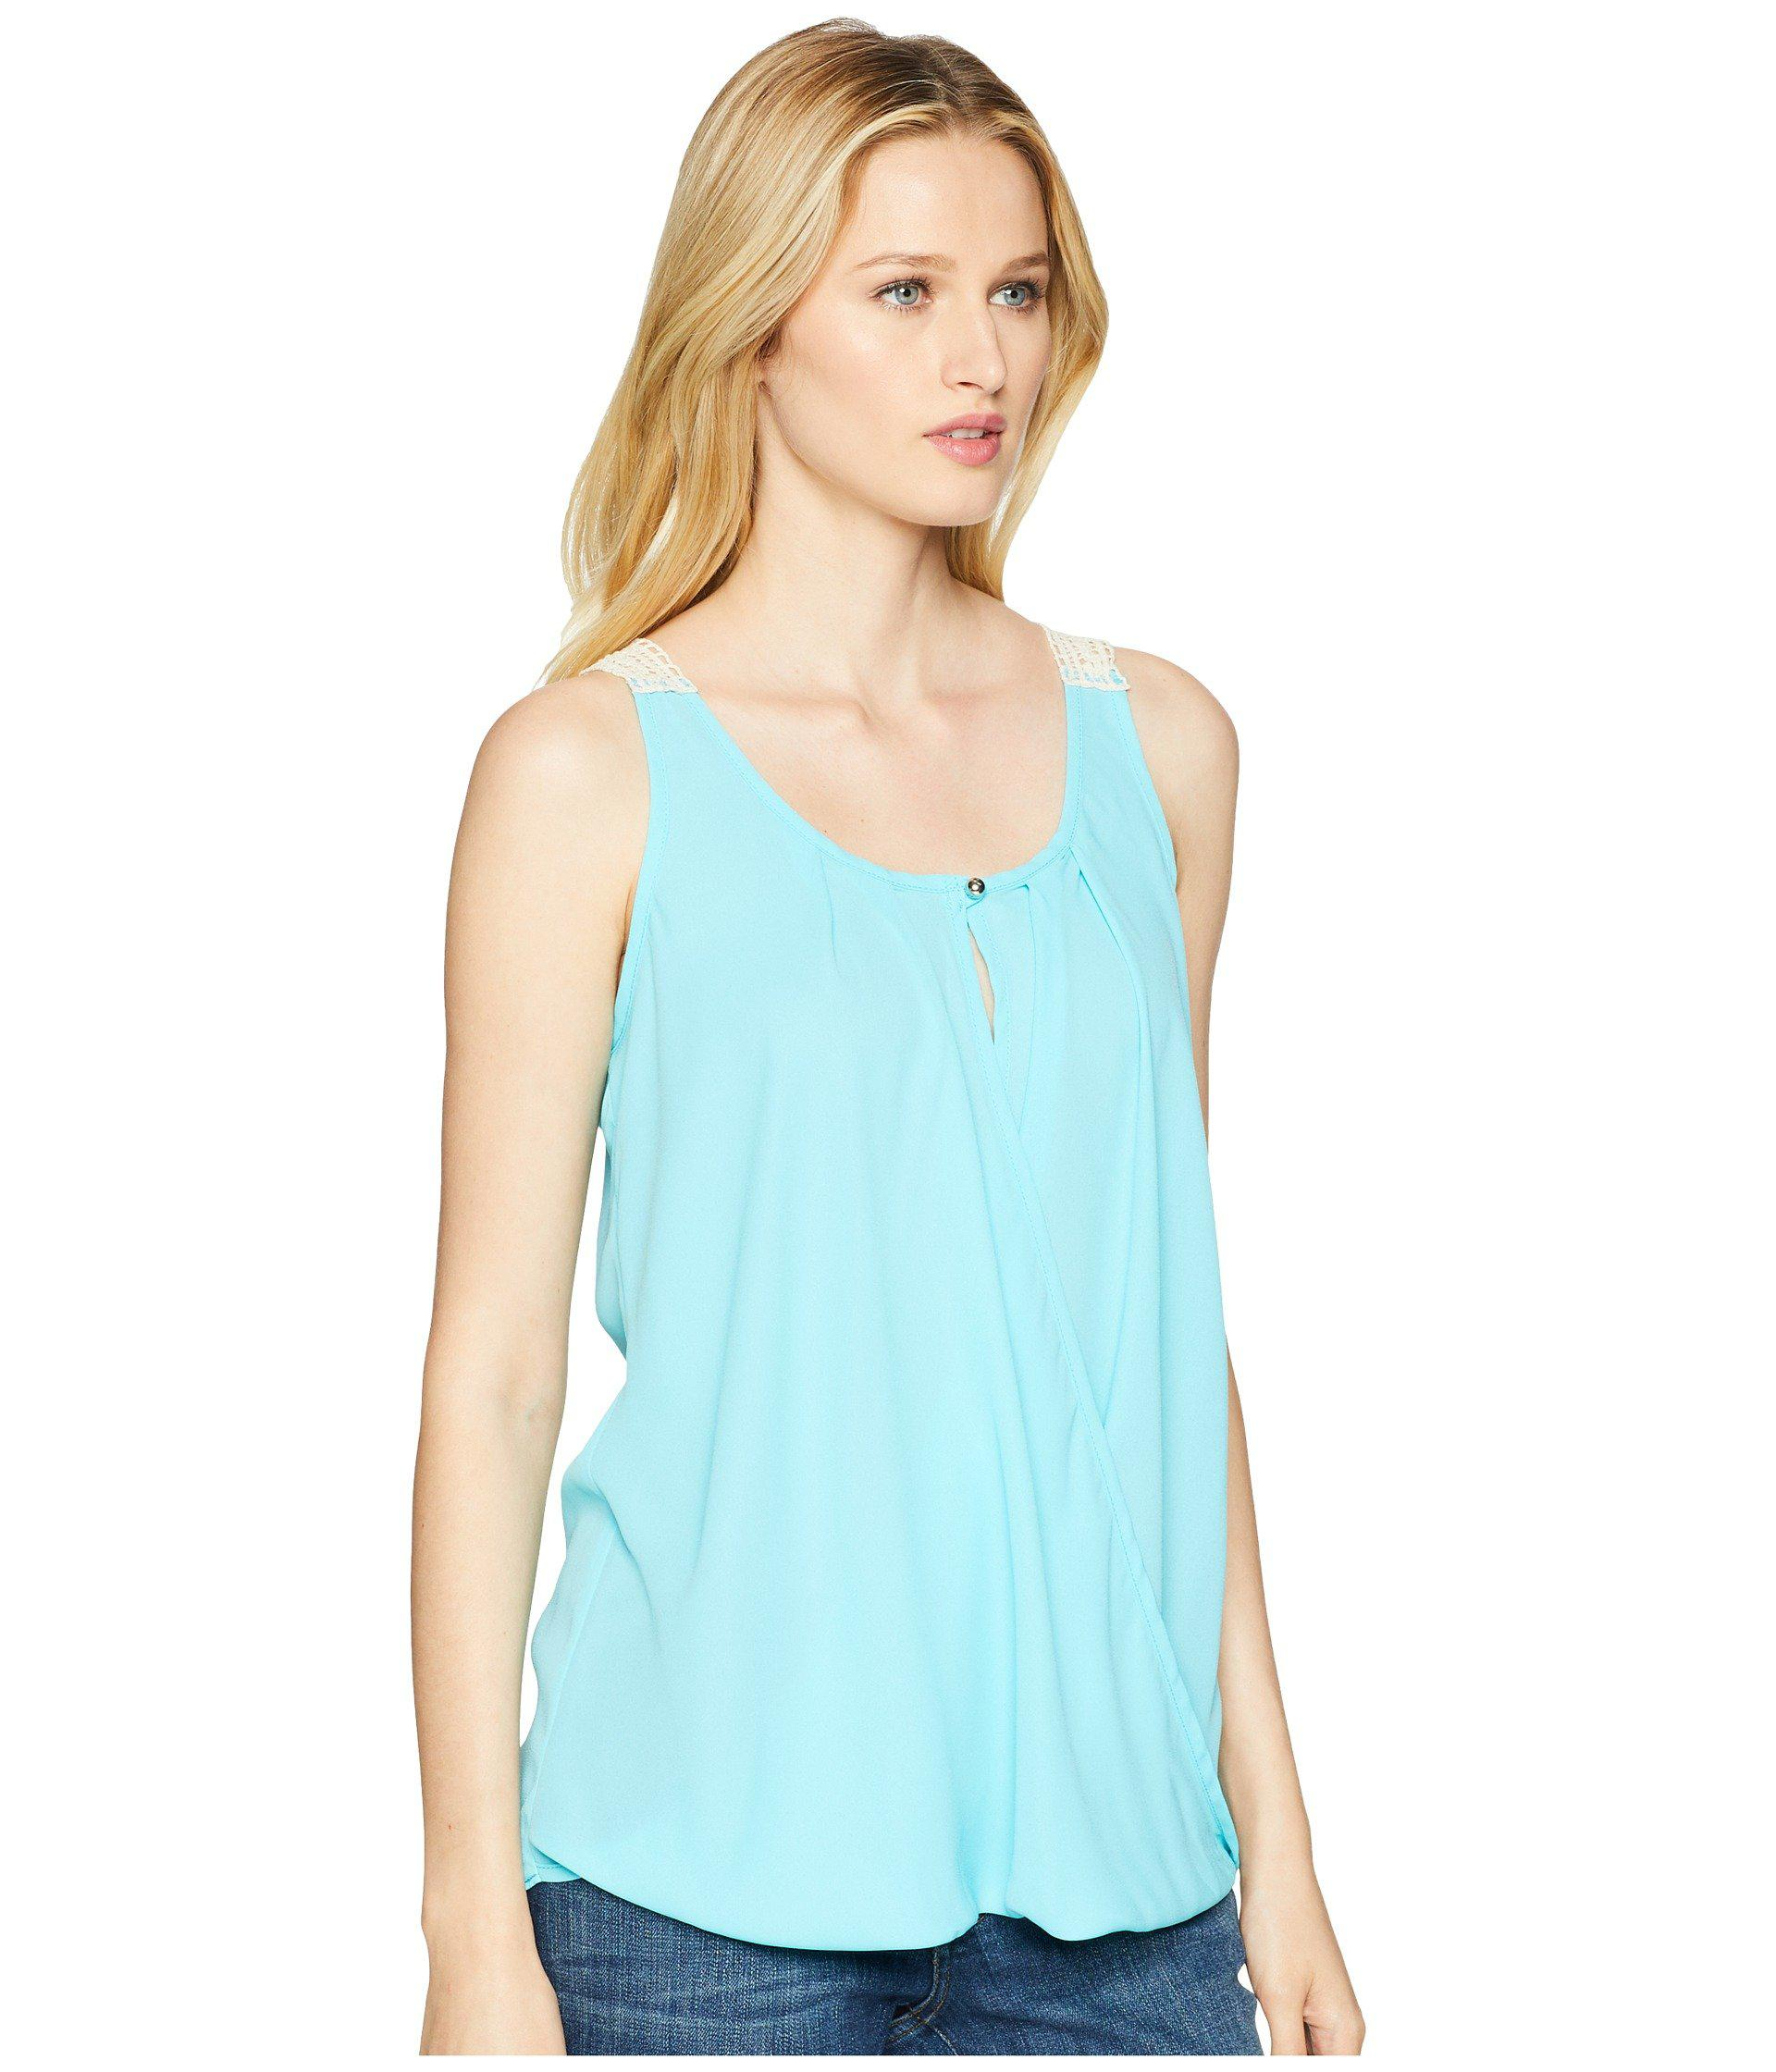 Excellent Cheap 2018 Unisex Sleeveless Surplice Crochet Back Top (Aqua Jade) Womens Sleeveless Wrangler Pay With Paypal Sale Online Sale Wholesale Price Geniue Stockist For Sale xqFFS